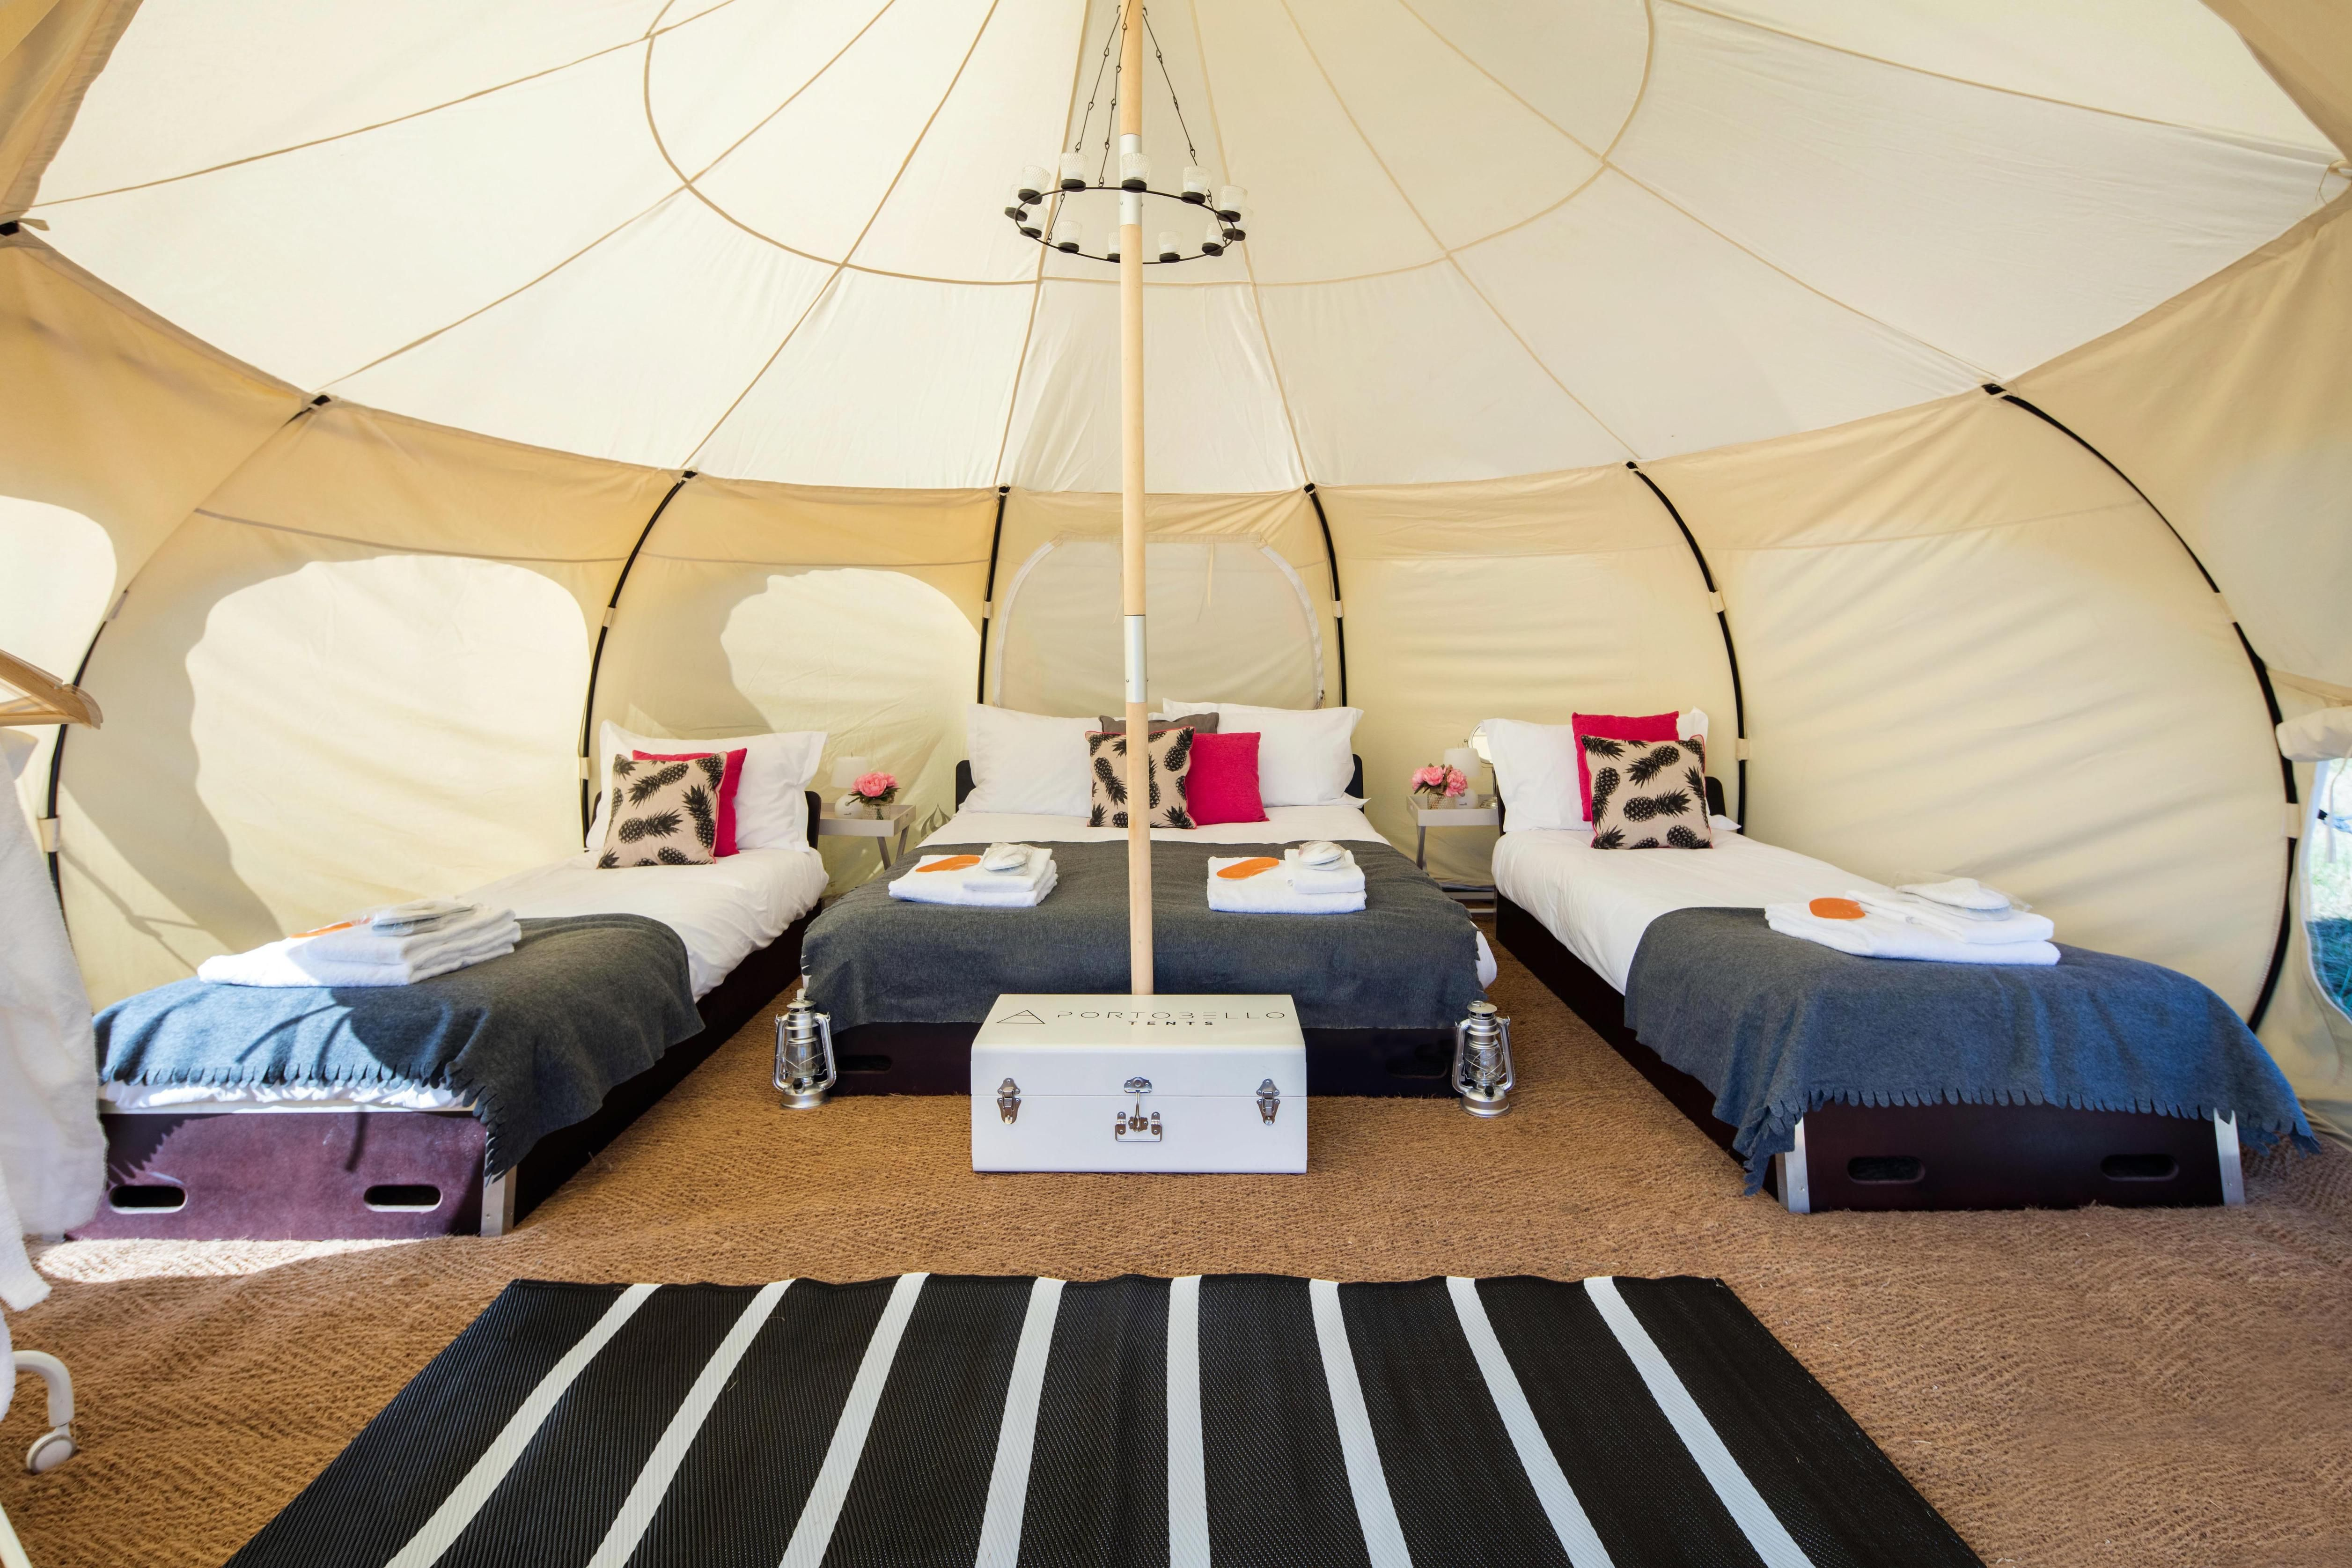 VIP Lotus Belle Tent with Family layout. A kingsize bed and two singles. & VIP Lotus Belle Tent with Family layout. A kingsize bed and two ...